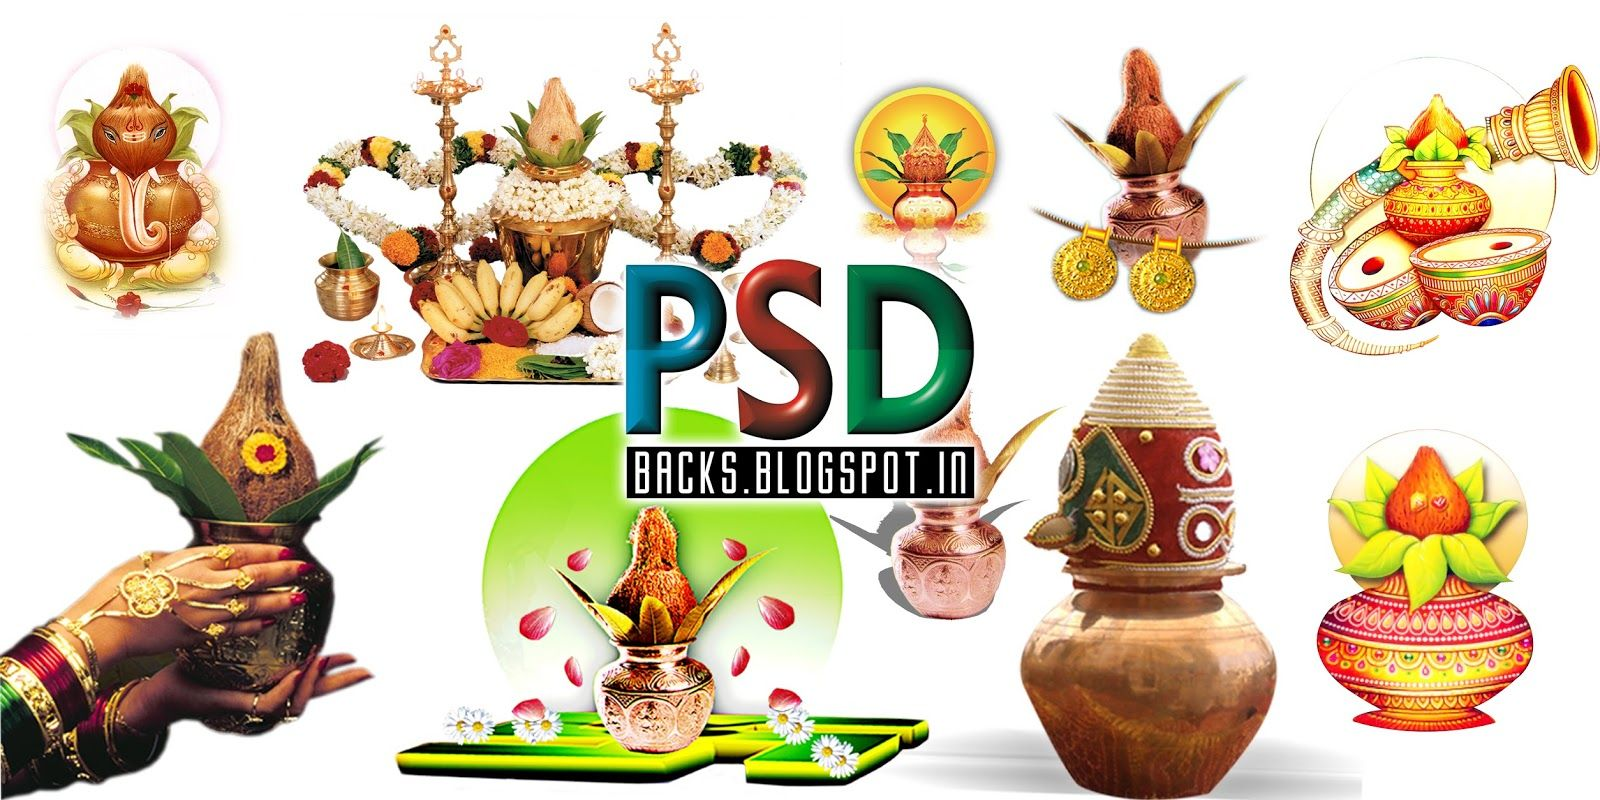 Indian clipart station . Free download wedding cliparts for photoshop psd files